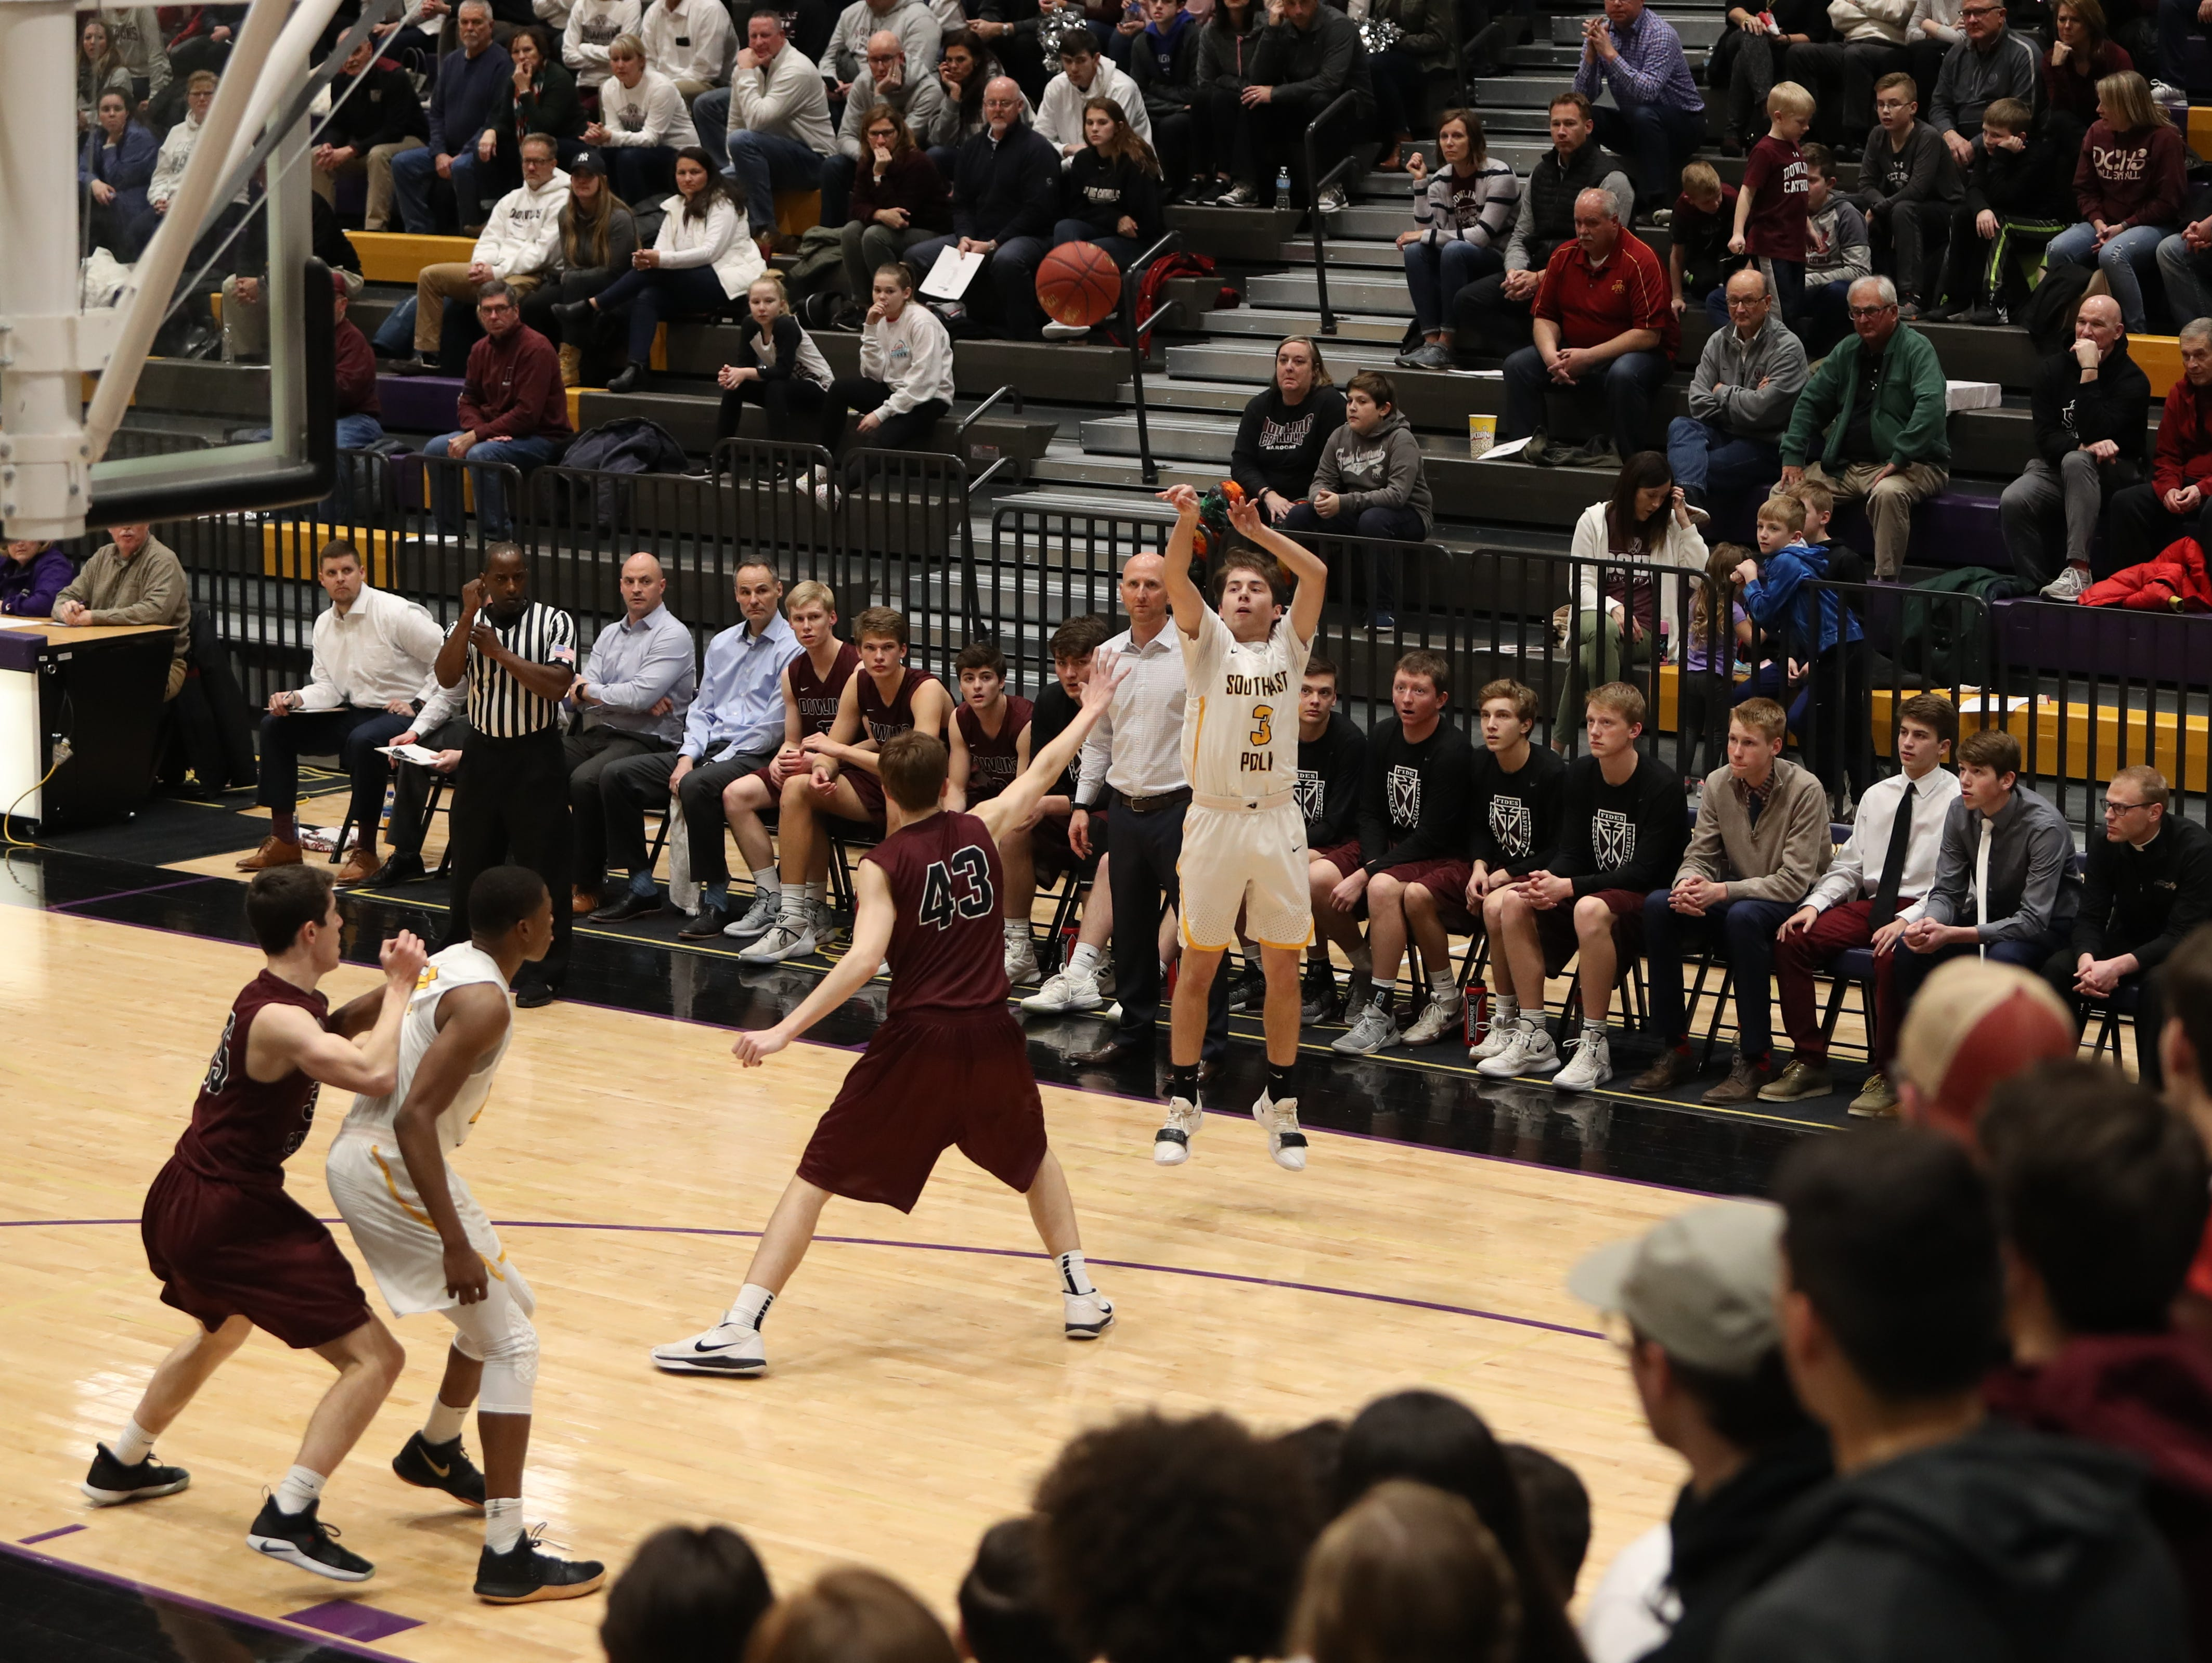 Southeast Polk's Kaleb Krier (3) shoots from the outside against the Dowling Catholic during their game at Johnston High School in Johnston, Iowa, on Tuesday, Feb. 26, 2019. Dowling won the game 44-40 to advance to state.